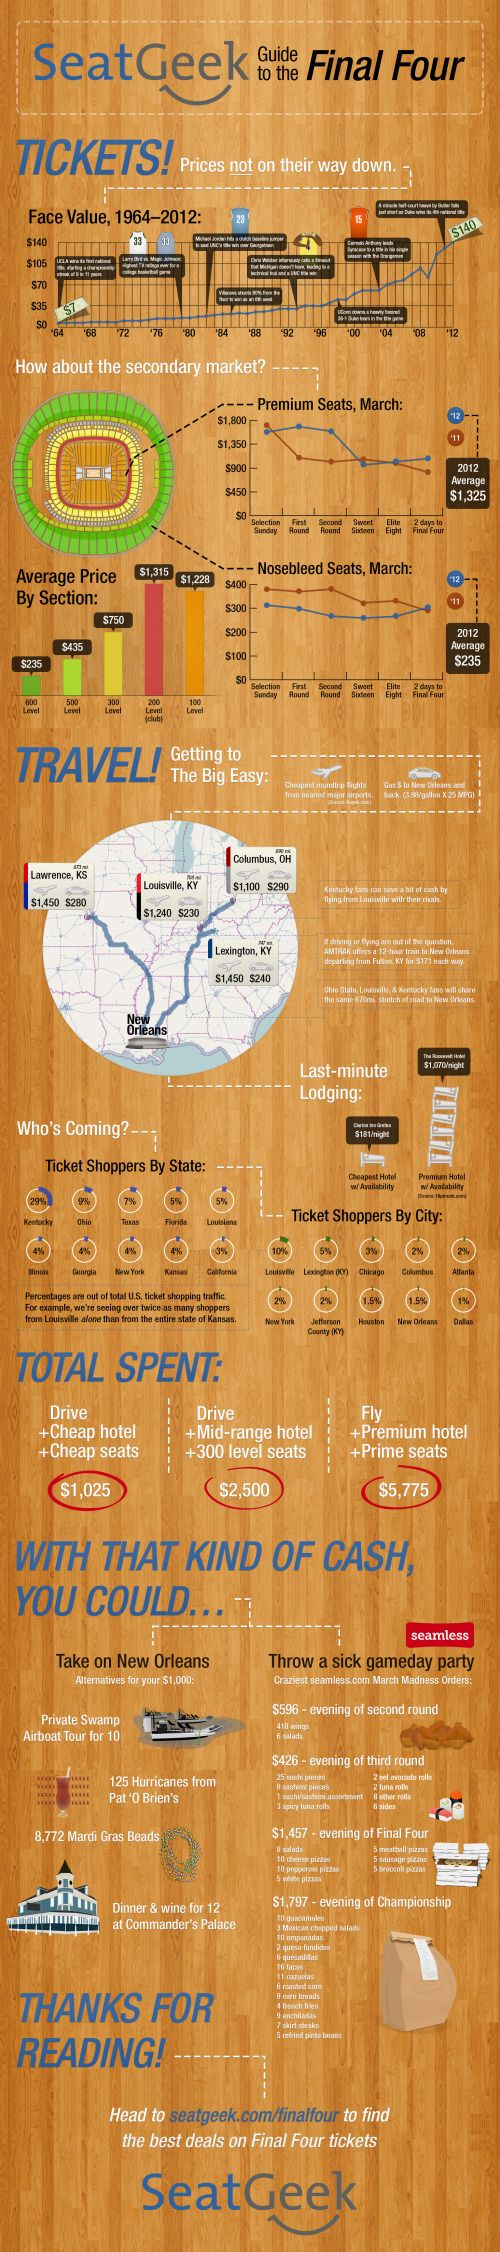 SEAT GEEK. GUIDE TO THE FINAL FOUR - http://www.coolinfoimages.com/infographics/seat-geek-guide-to-the-final-four/